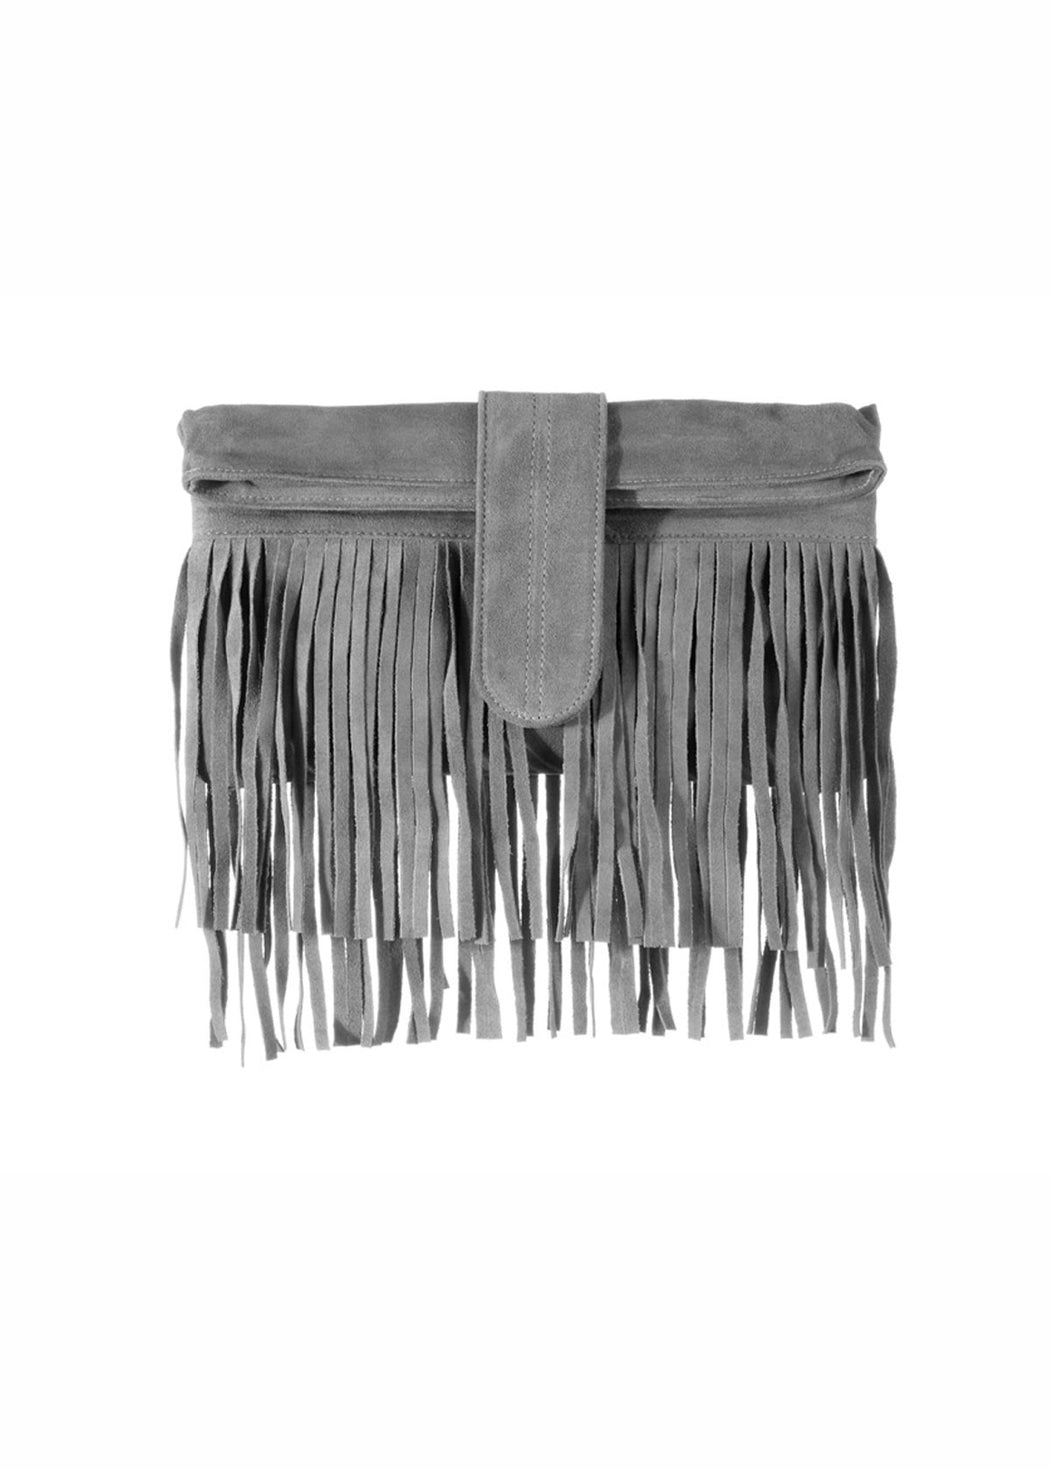 SUEDE DOUBLE FRINGE GREY CLUTCH